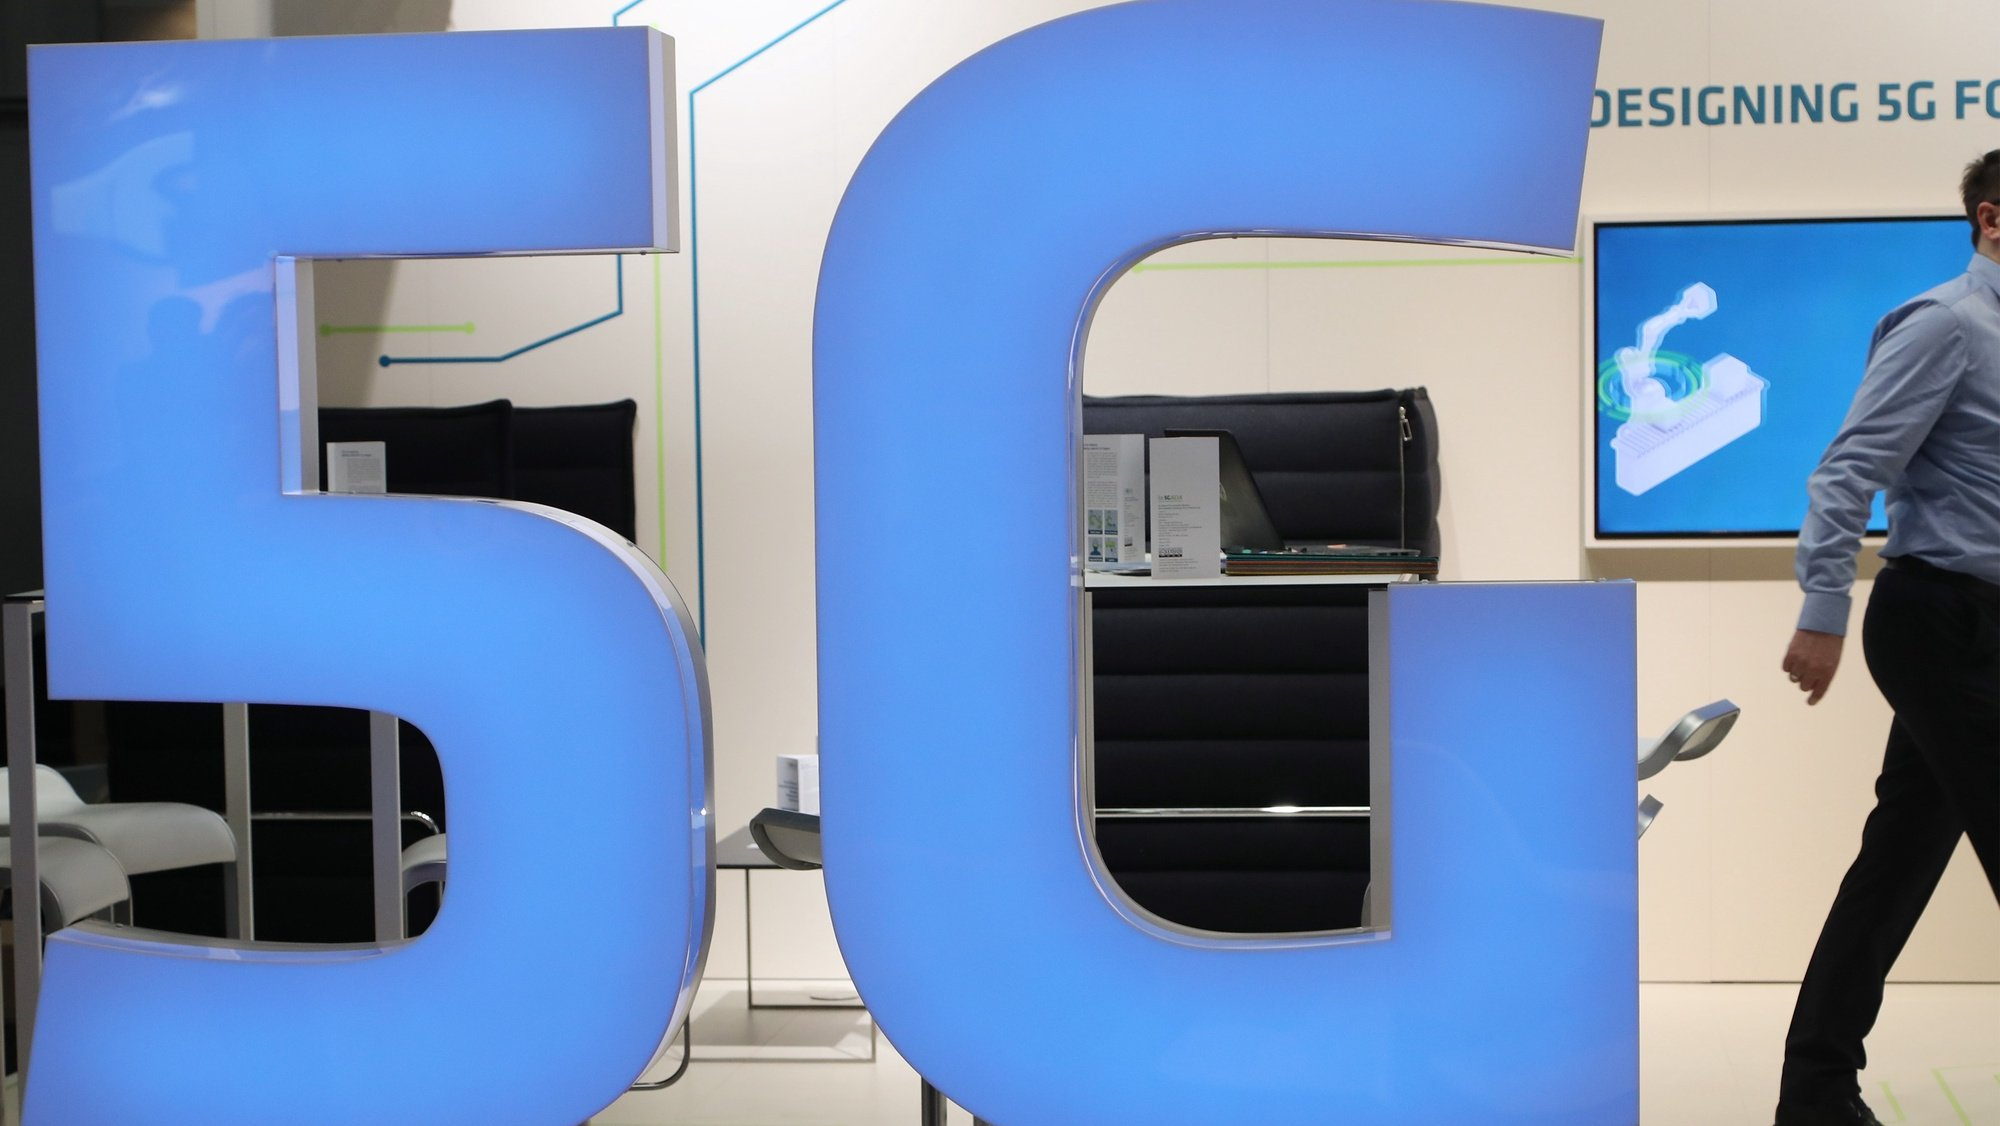 epa07475973 A man walks  behind a 5G logo at the Hannover Industry Fair (Hannover Messe) in Hanover, Germany, 31 March 2019. From 01 April to 05 April, 6,500 exhibitors from 75 countries show their products during one of the World's leading fairs for industrial goods. Main focus of the Hannover Messe 2019 is on Artificial Intelligence and the new mobile standard 5G.  EPA/FOCKE STRANGMANN